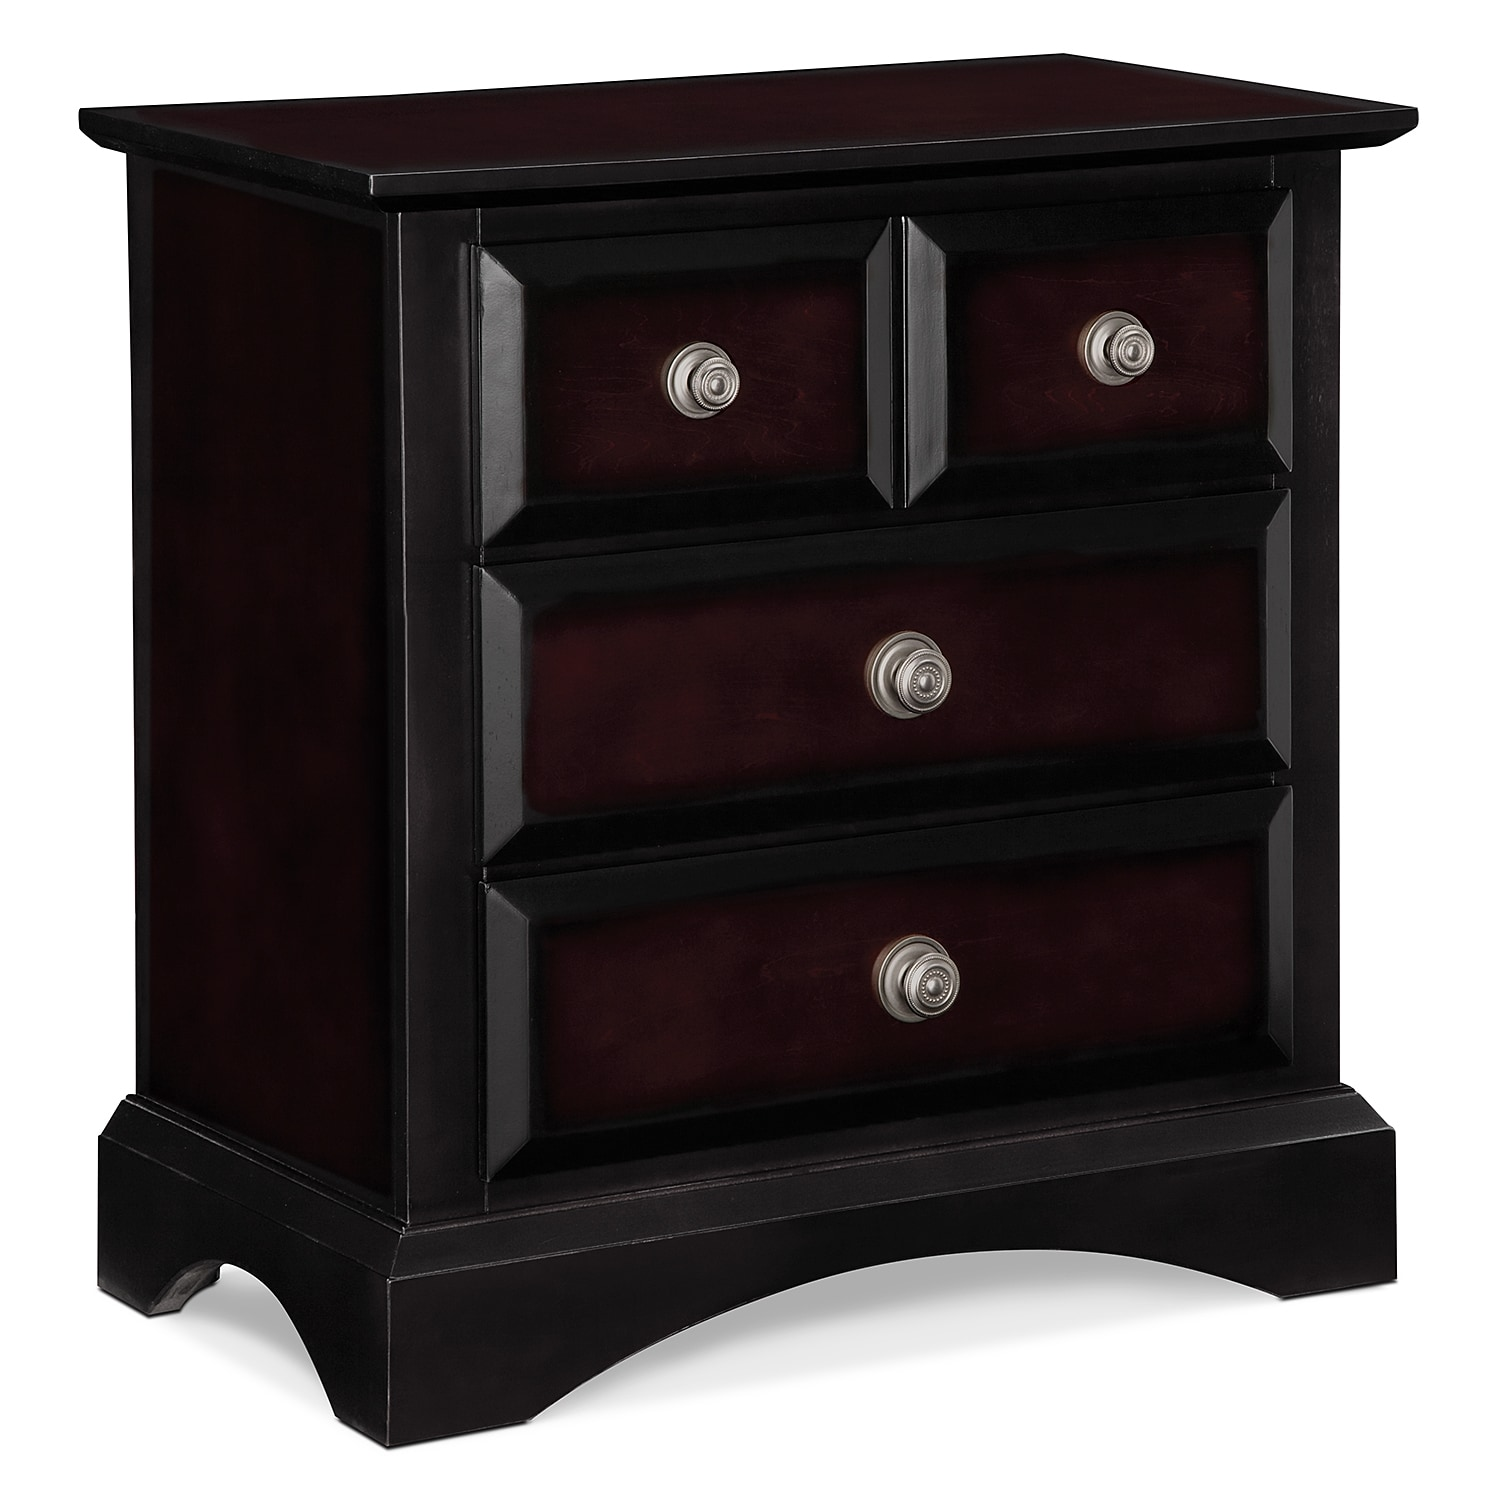 Winchester Nightstand - Black and Burnished Merlot